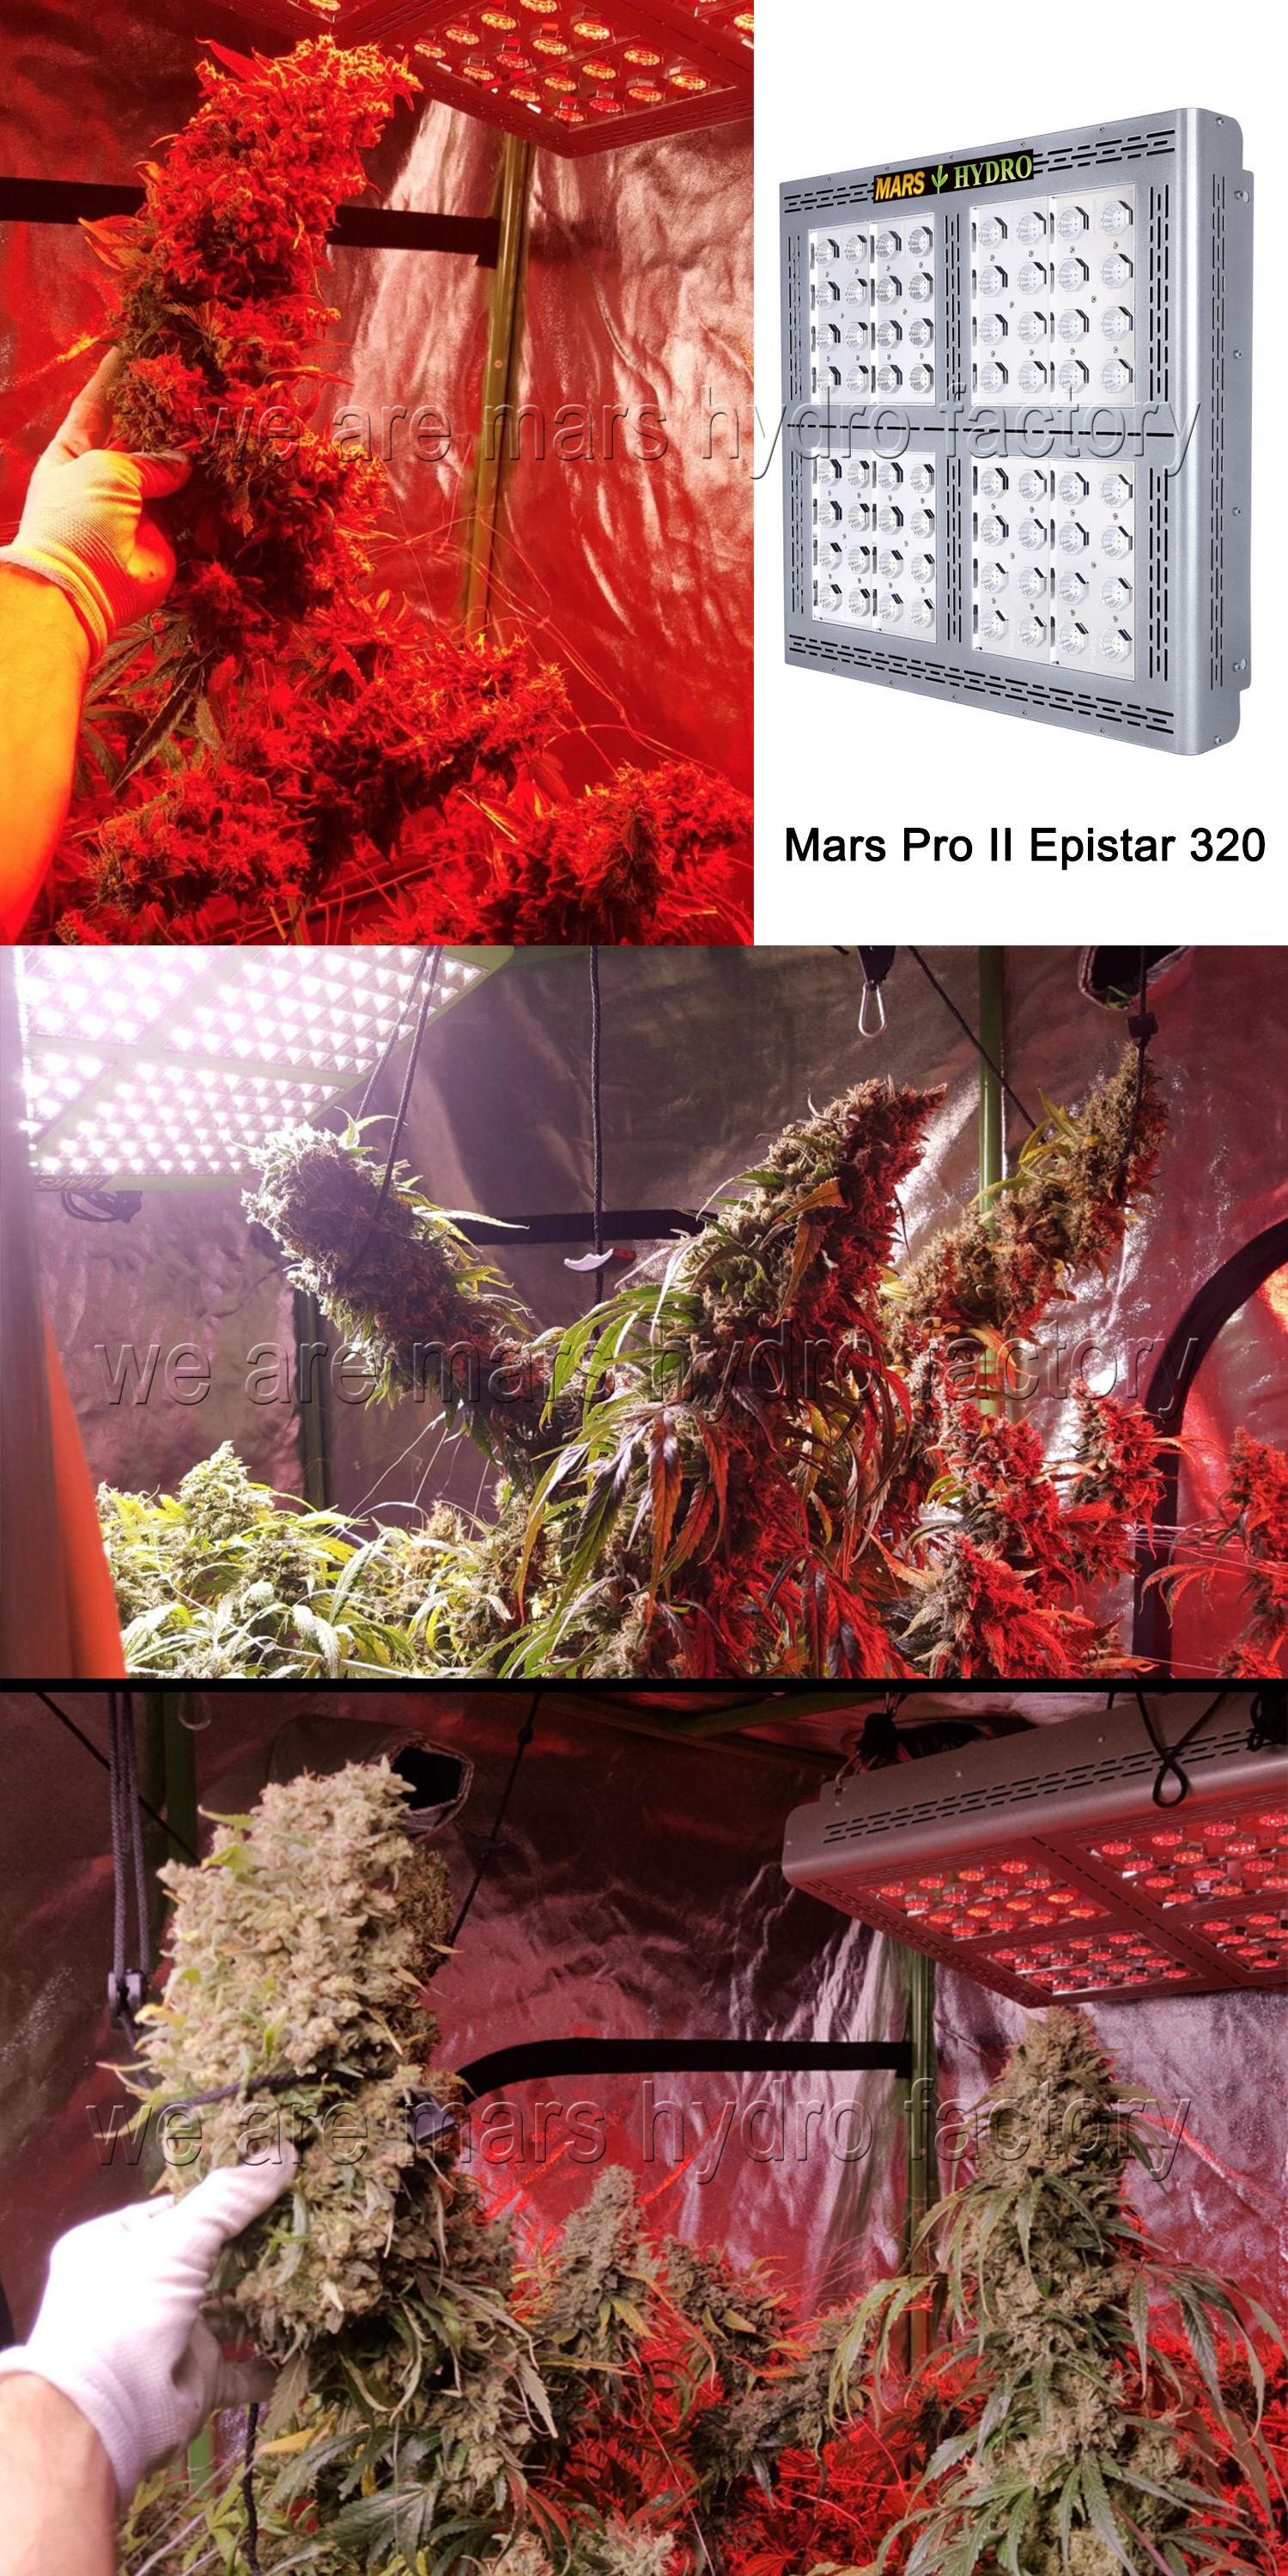 2 X Mars Hydro Ts 3000w Led Grow Light Full Spectrum Veg Bloom For Indoor Plants Led Grow Lights Grow Lights Best Led Grow Lights